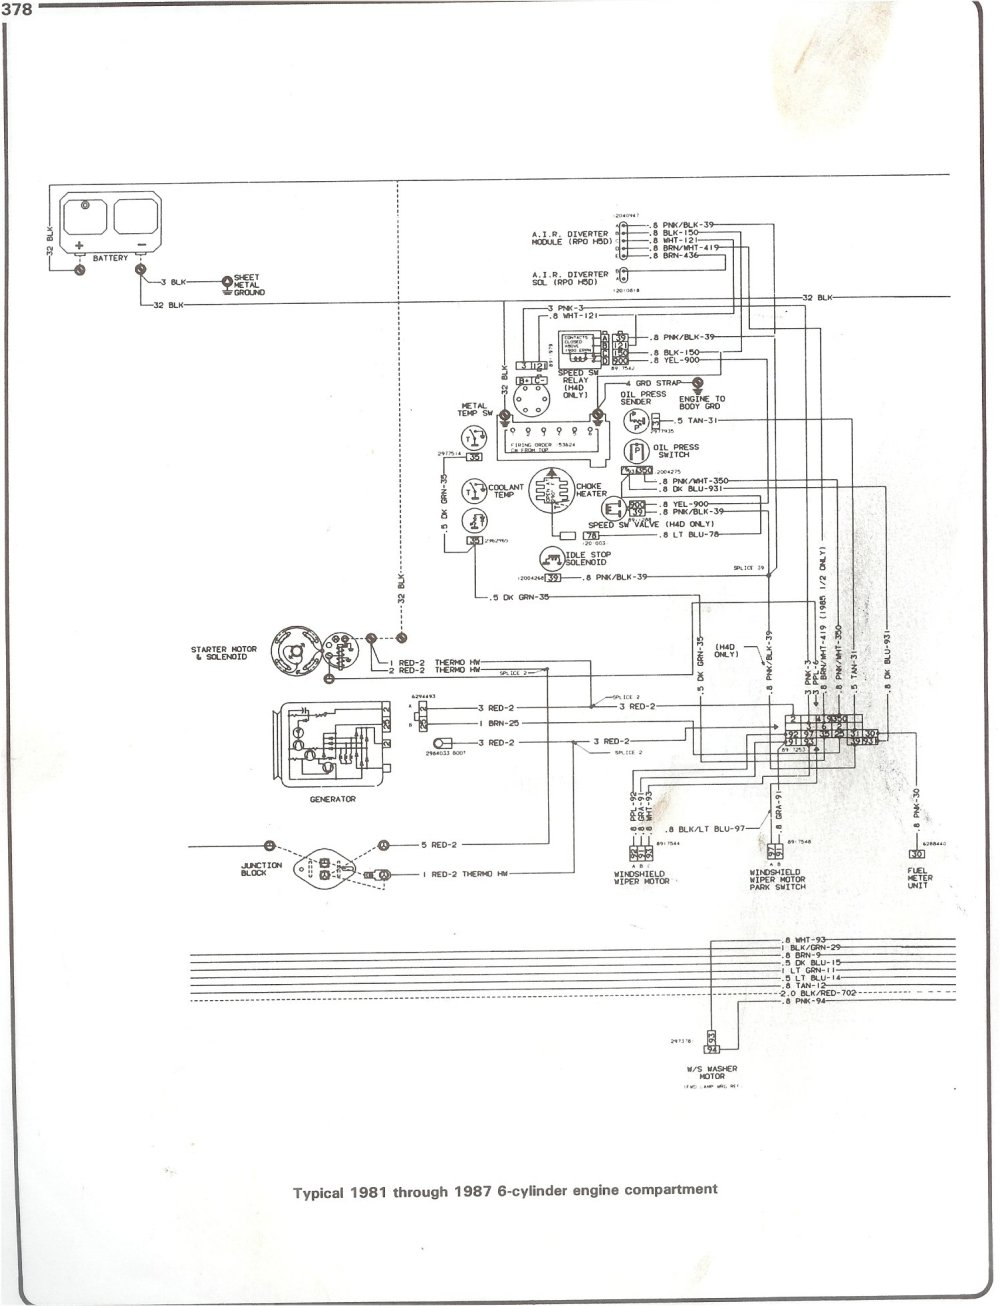 medium resolution of 1969 corvette dash wiring diagram on 1973 camaro fuse box diagram gm fuse block diagram 1973